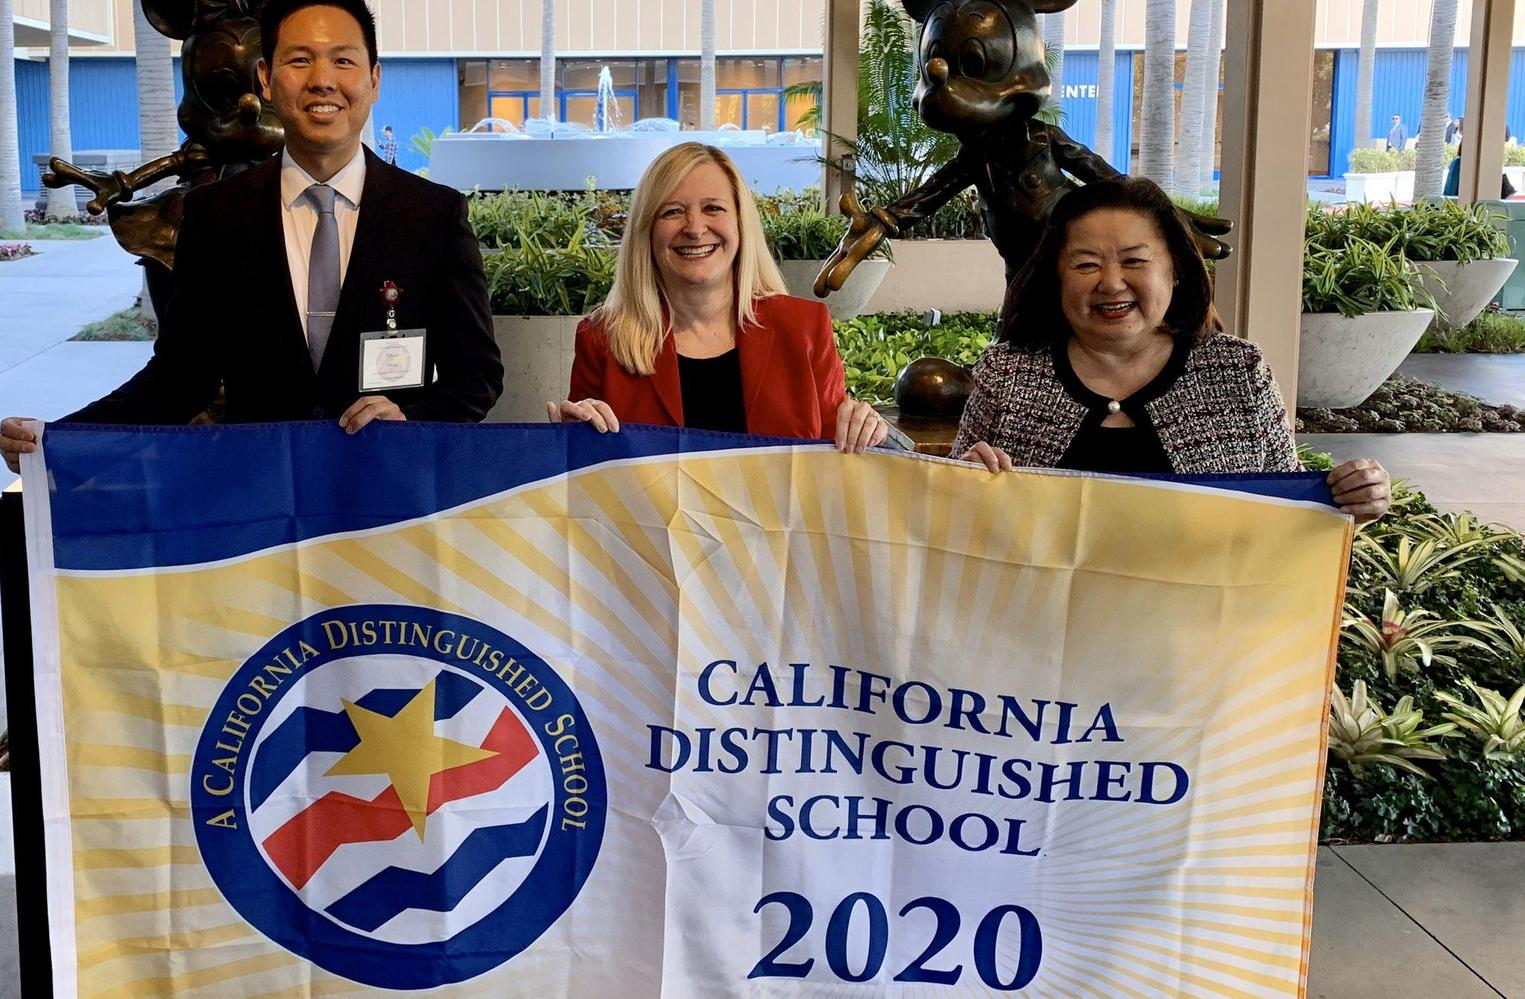 Carver 2020 CA Distinguished school